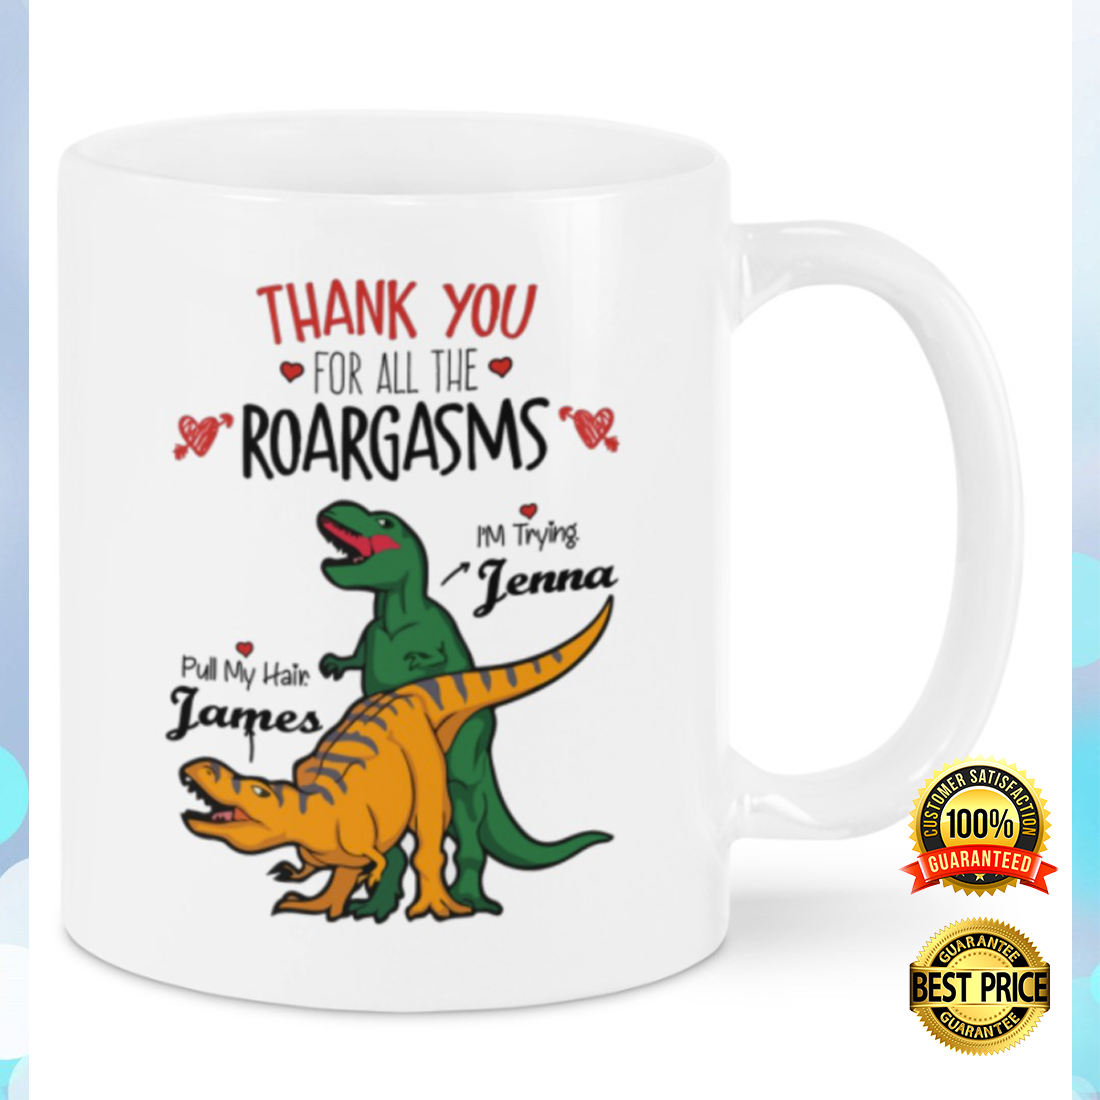 Personalized thank you for all the roargasms mug 3